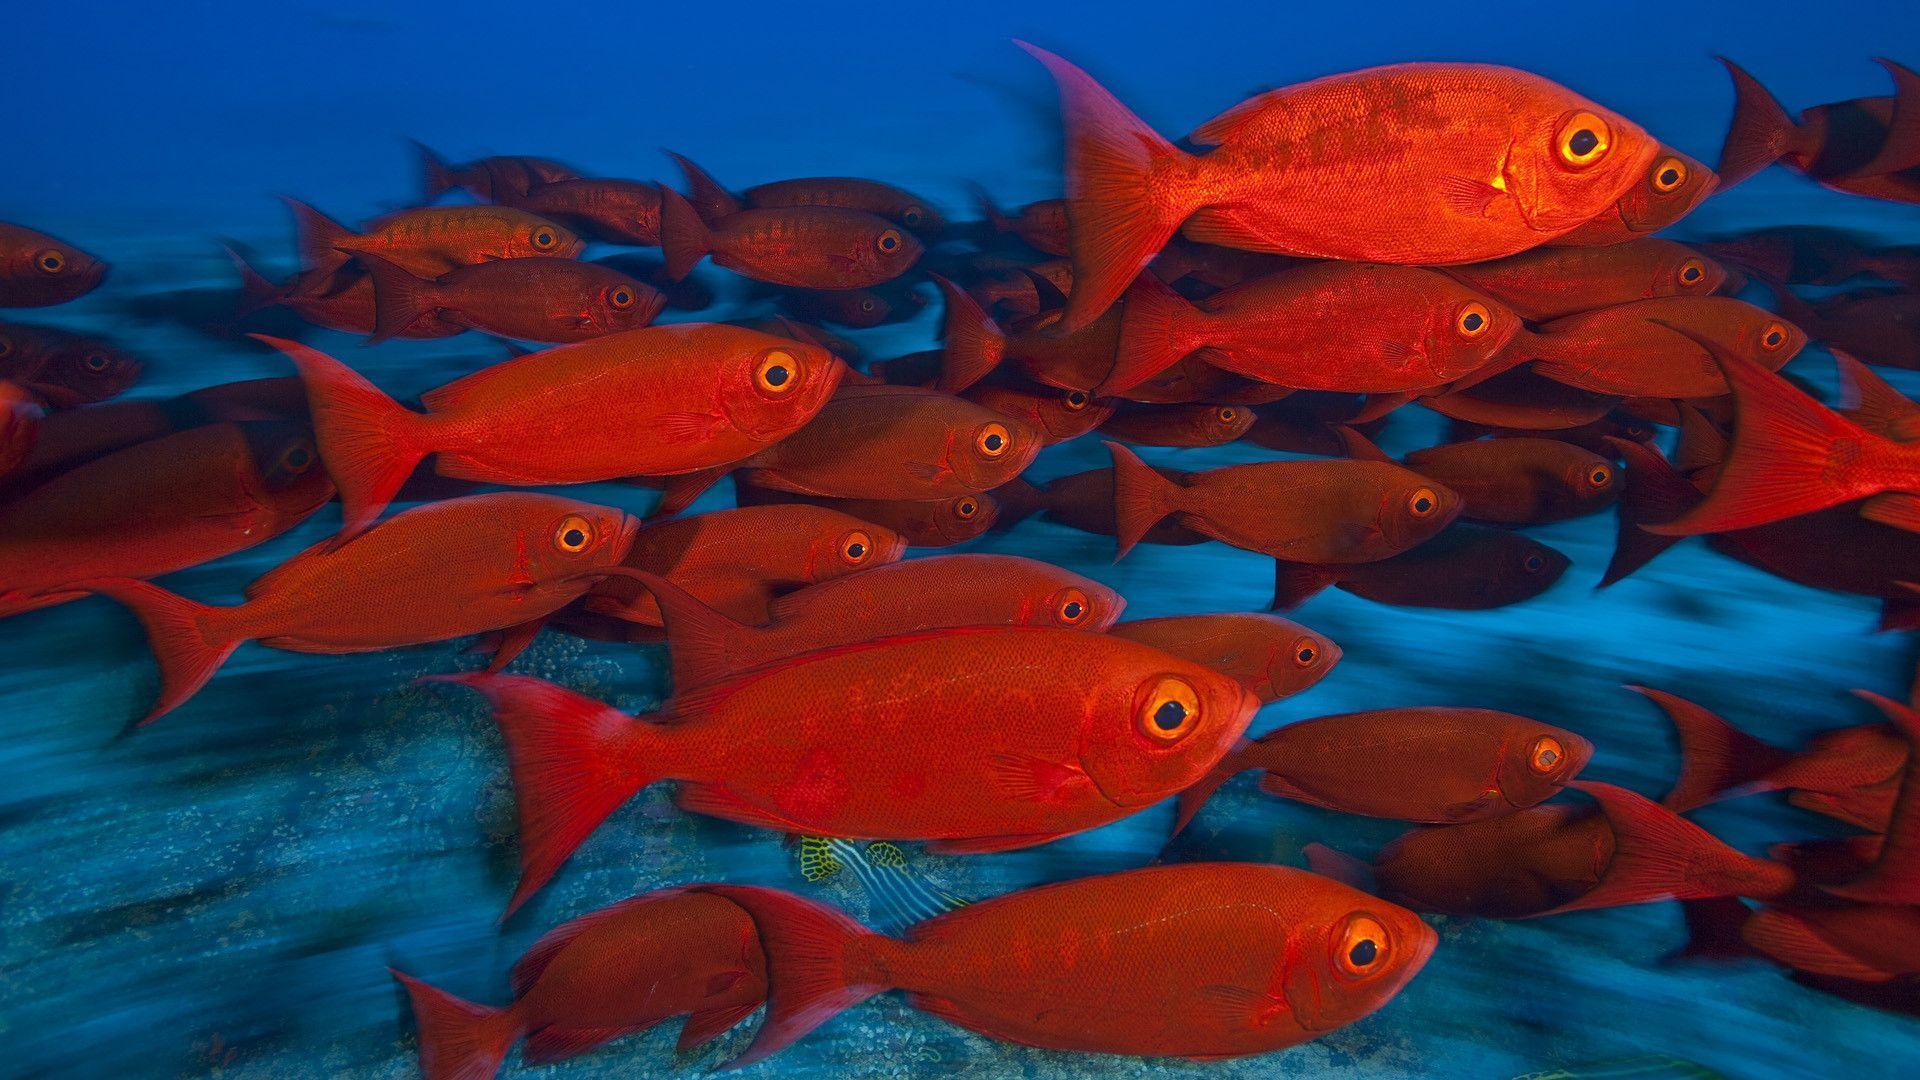 Wallpapers For > Redfish Wallpapers